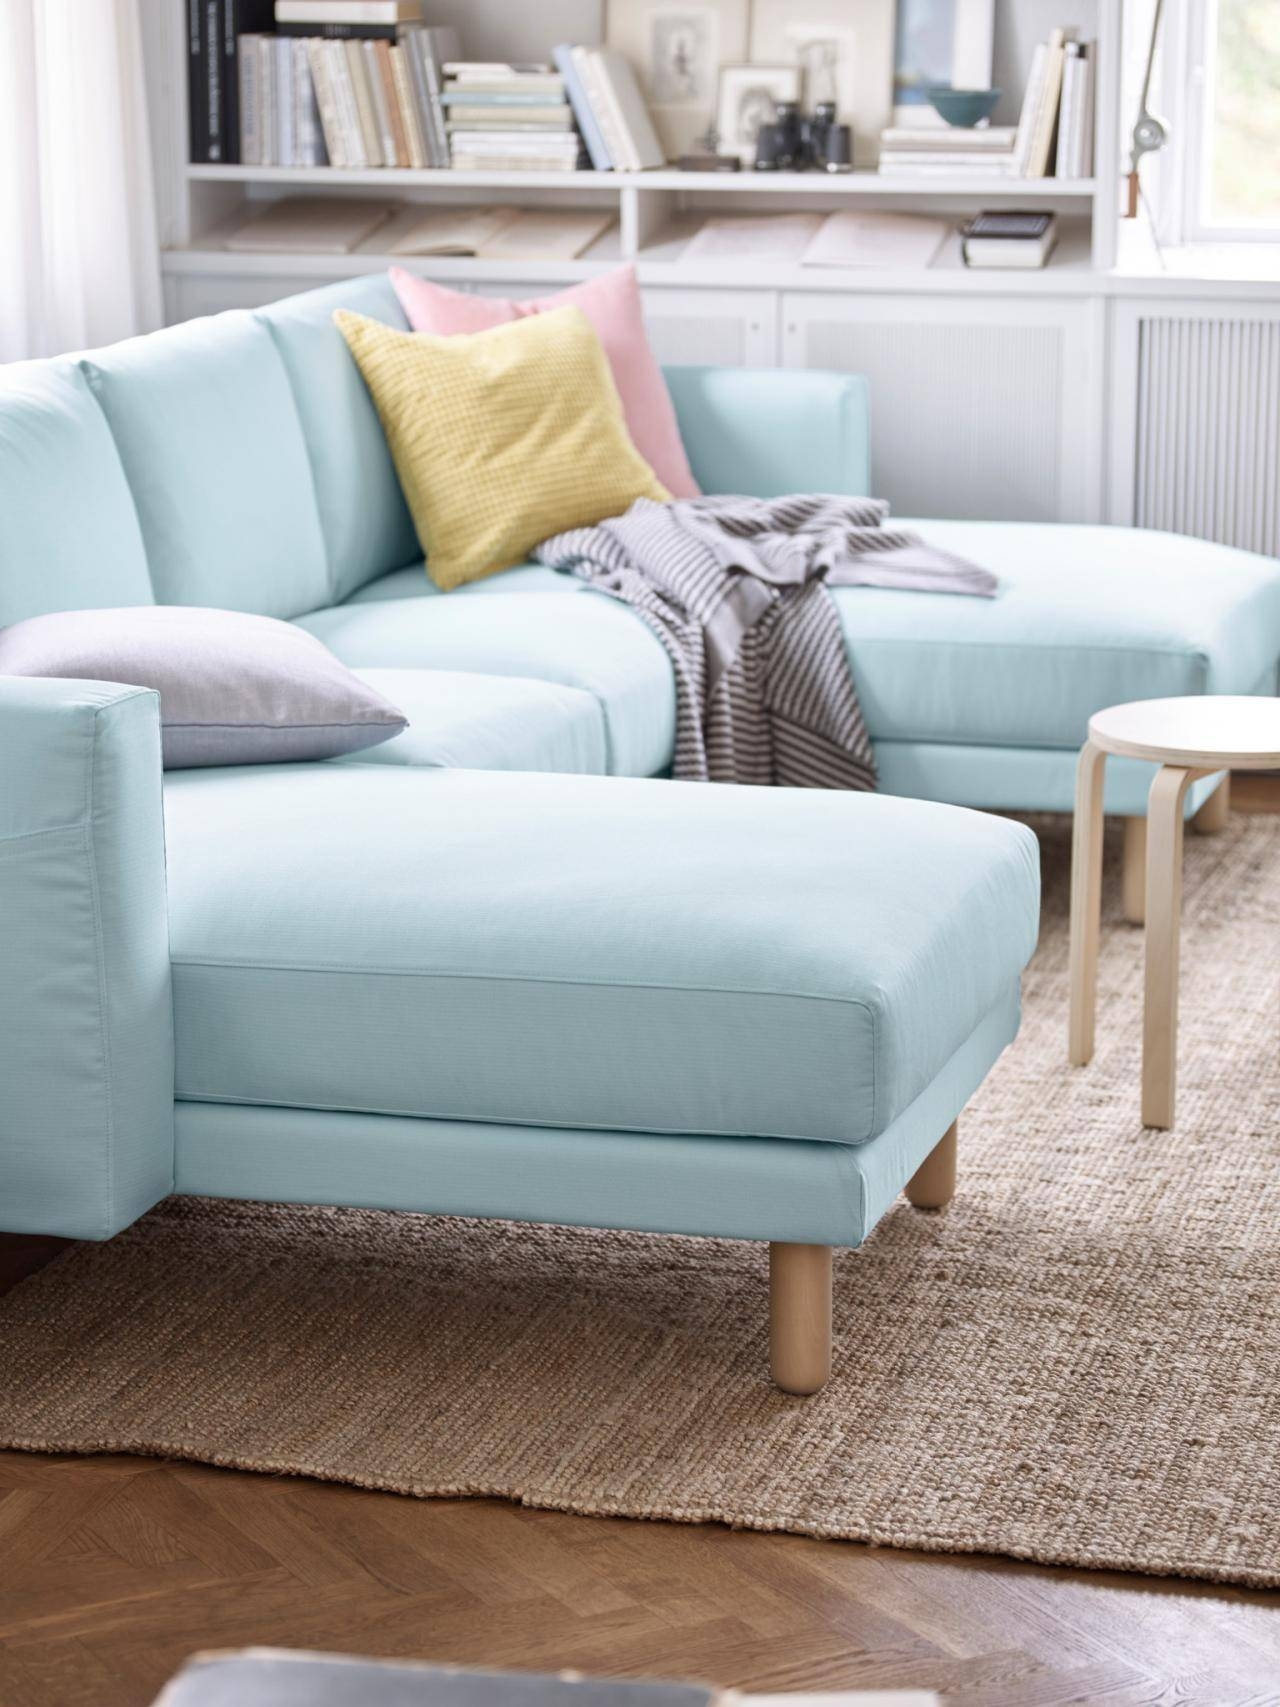 5 Apartment Sized Sofas That Are Lifesavers | Hgtv's Decorating regarding Condo Sectional Sofas (Image 1 of 30)